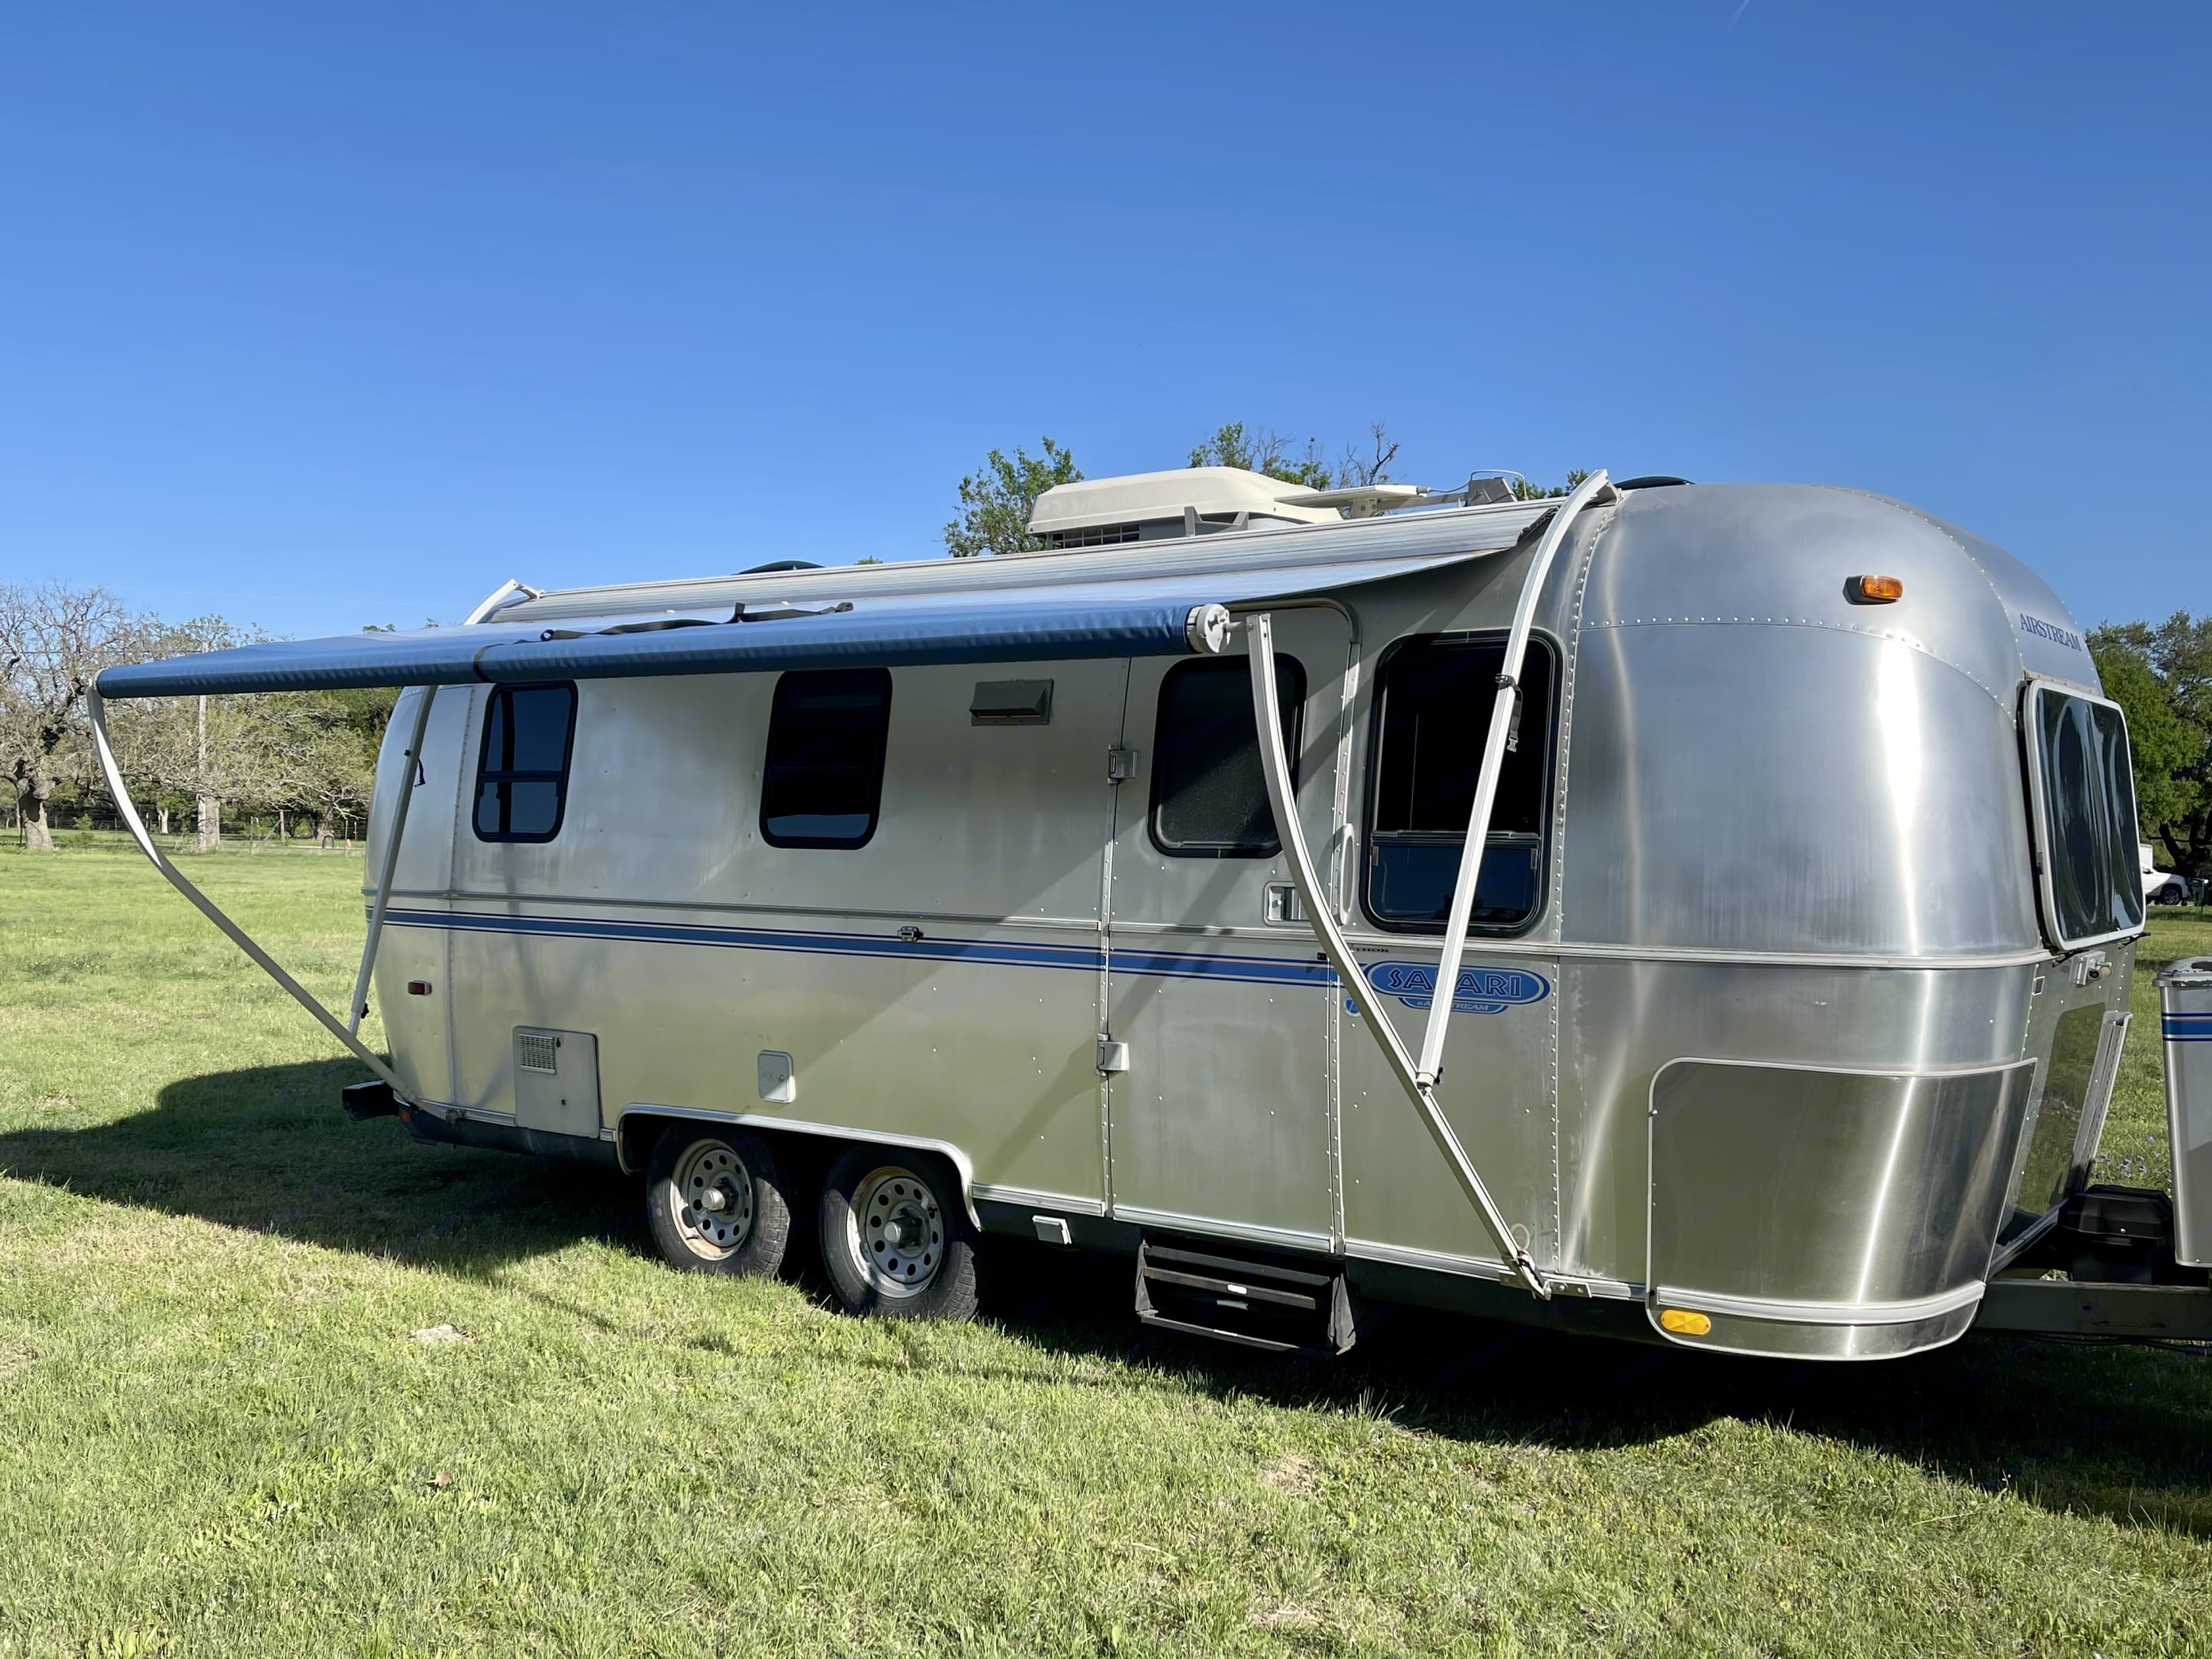 Beautiful exterior with a fully functioning awning. Airstream Safari 1999